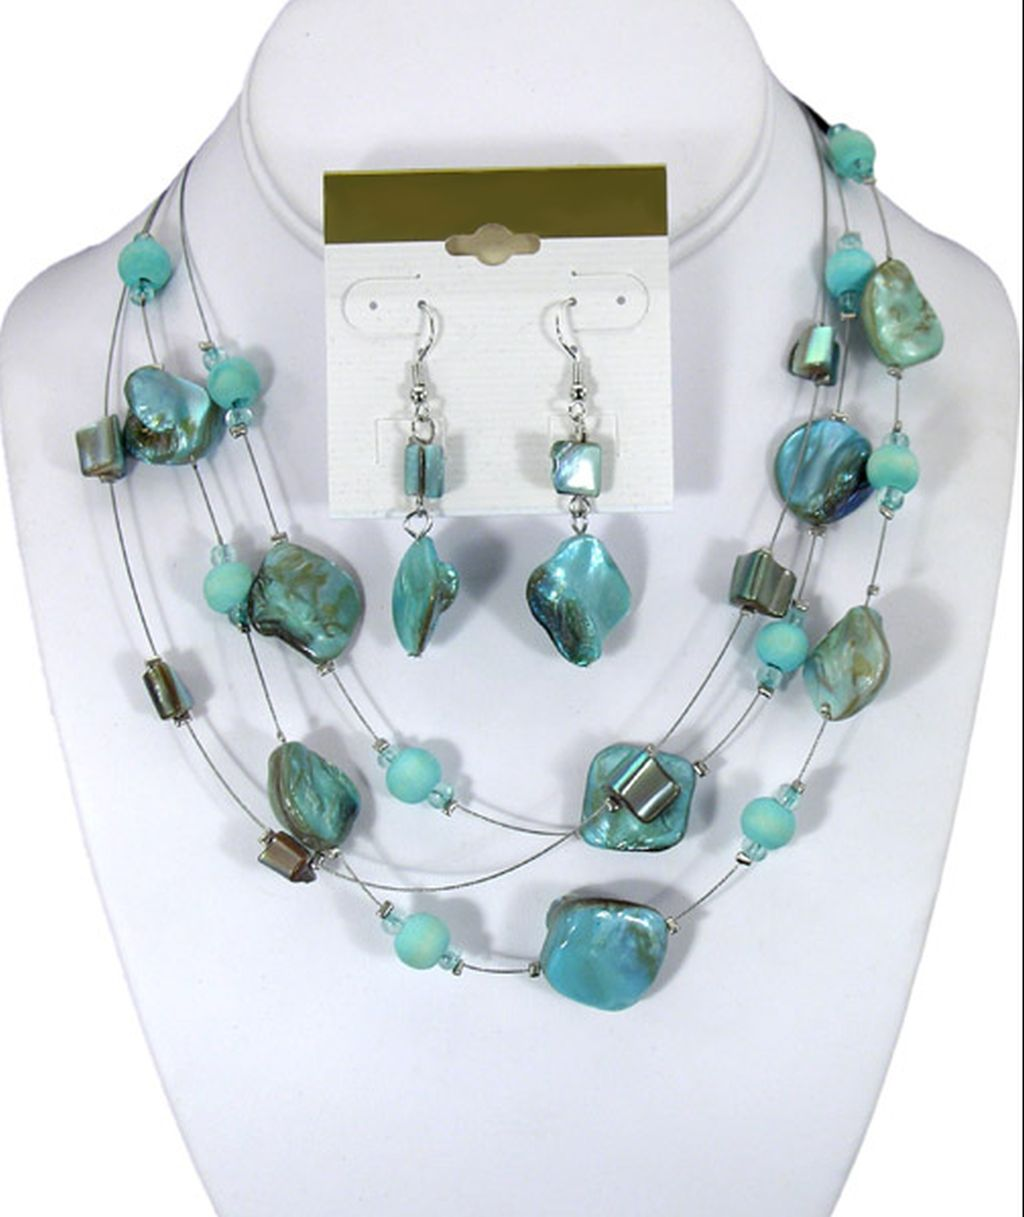 Turquoise Color Set of Necklace & Earrings, Three Strings of Mother of Pearl, Anti-allergic Jewelry